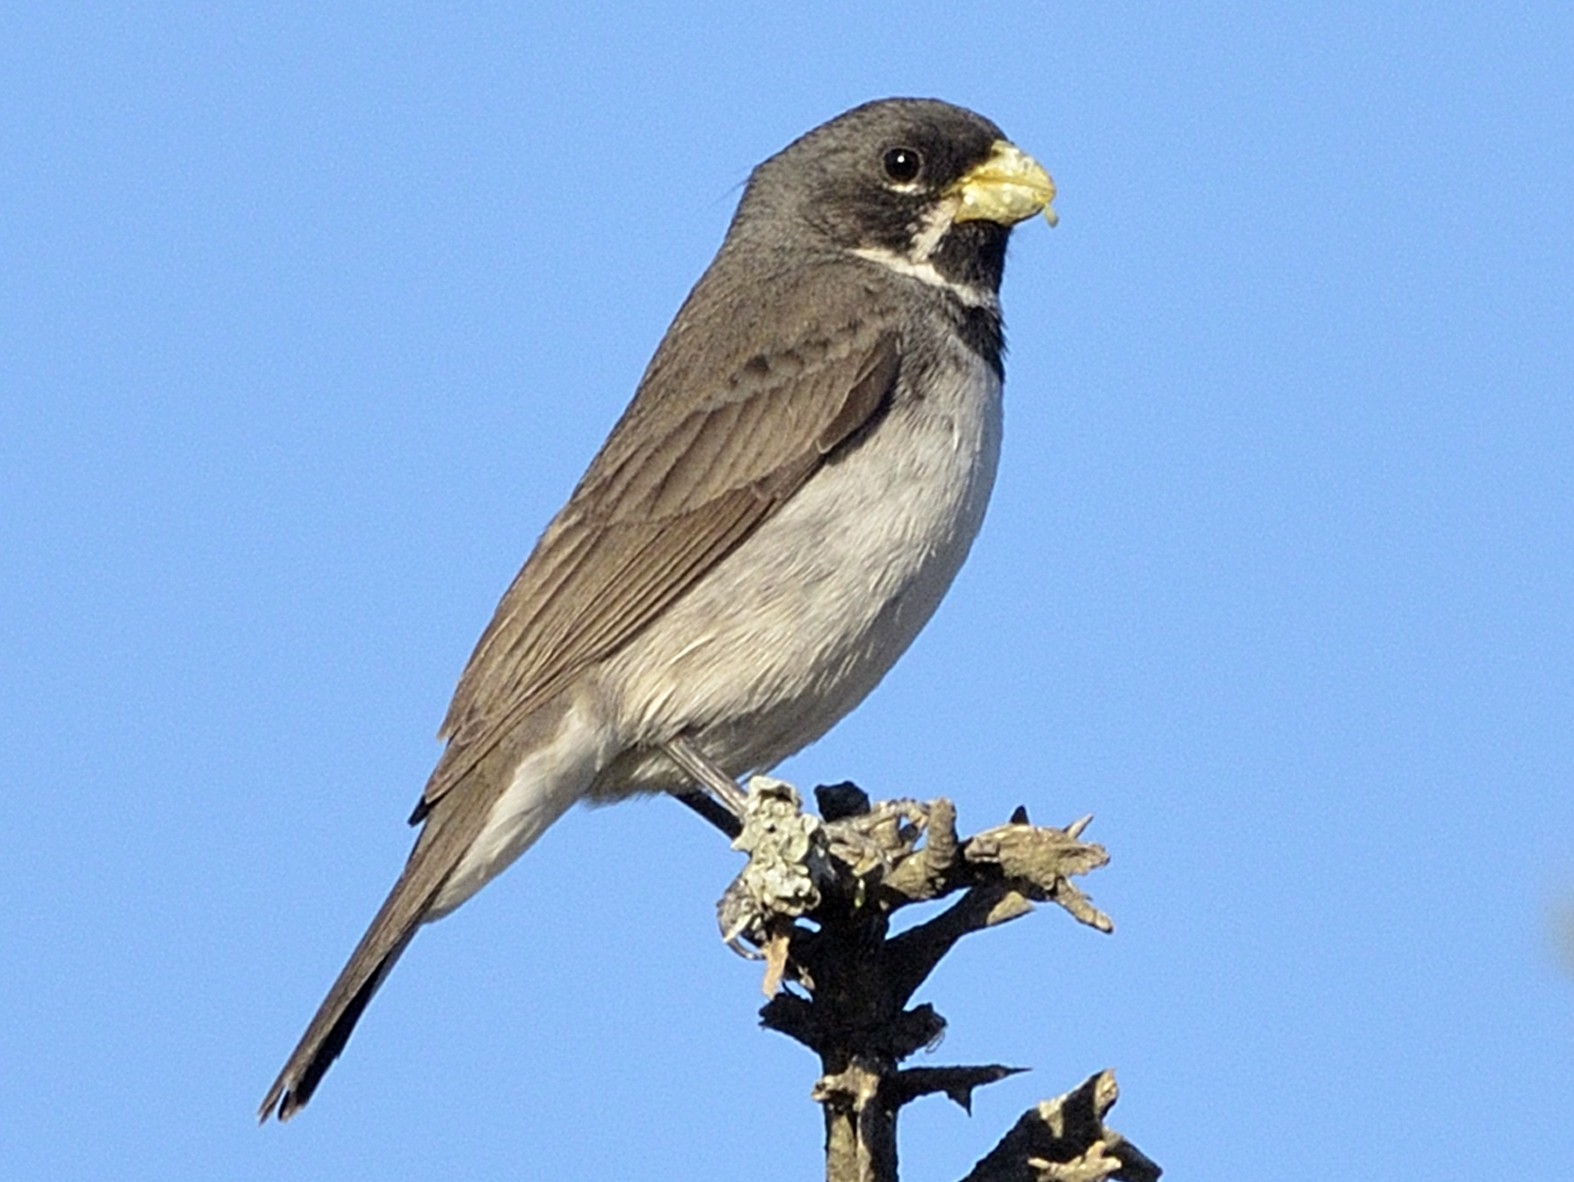 Double-collared Seedeater - Nahuel Melisa Aguirre Gago